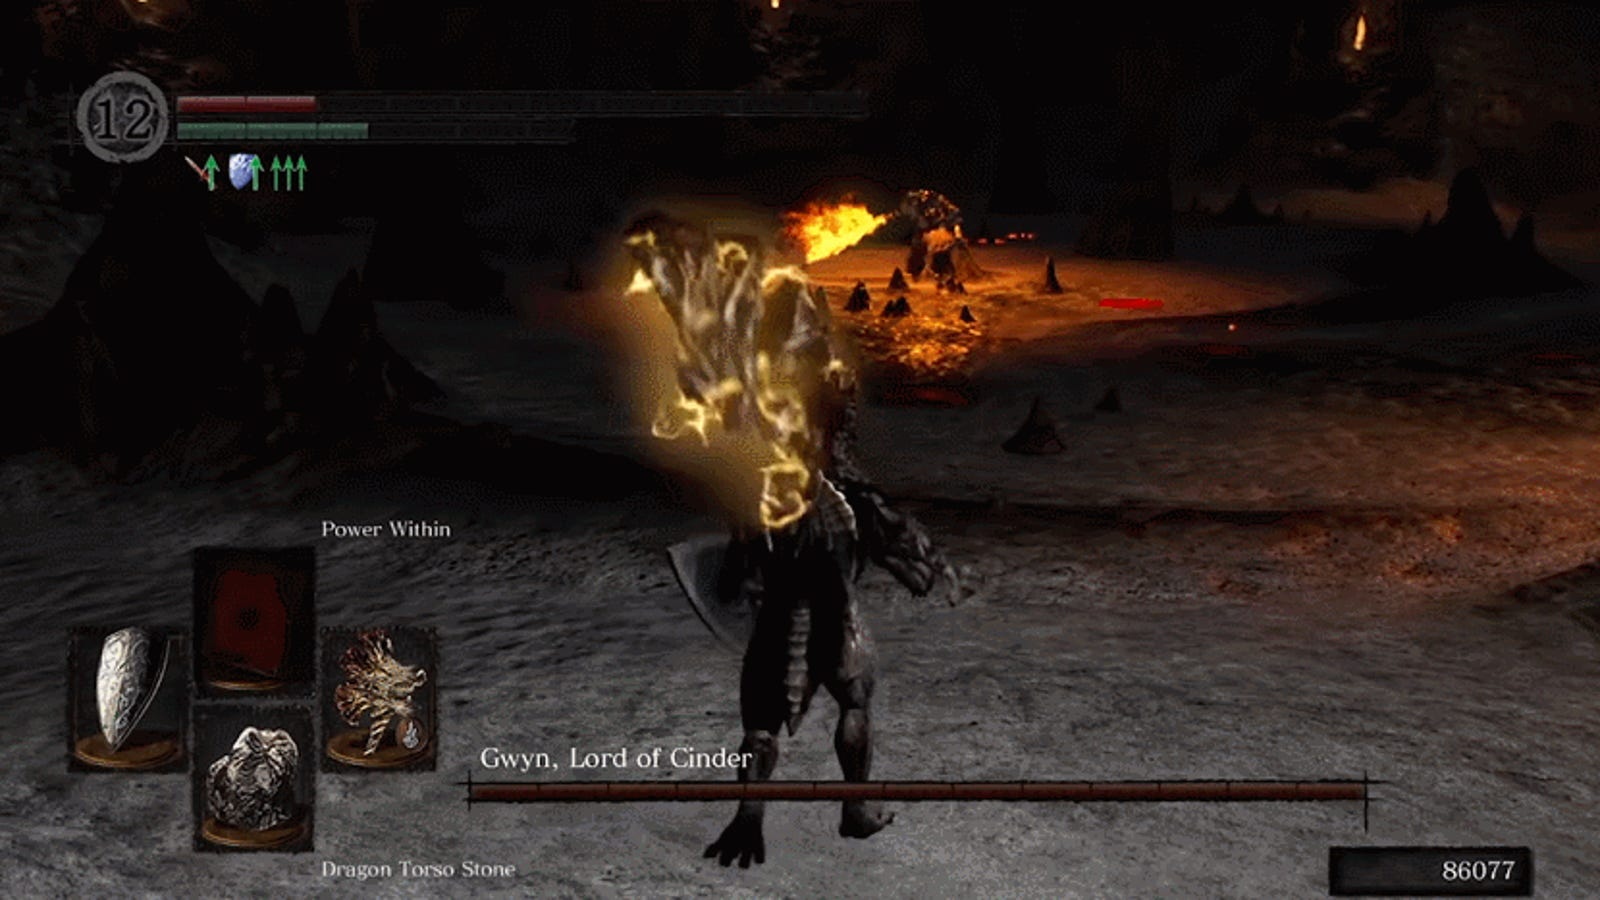 Defeating The Final Boss Of Dark Souls In One Hit Is Satisfying